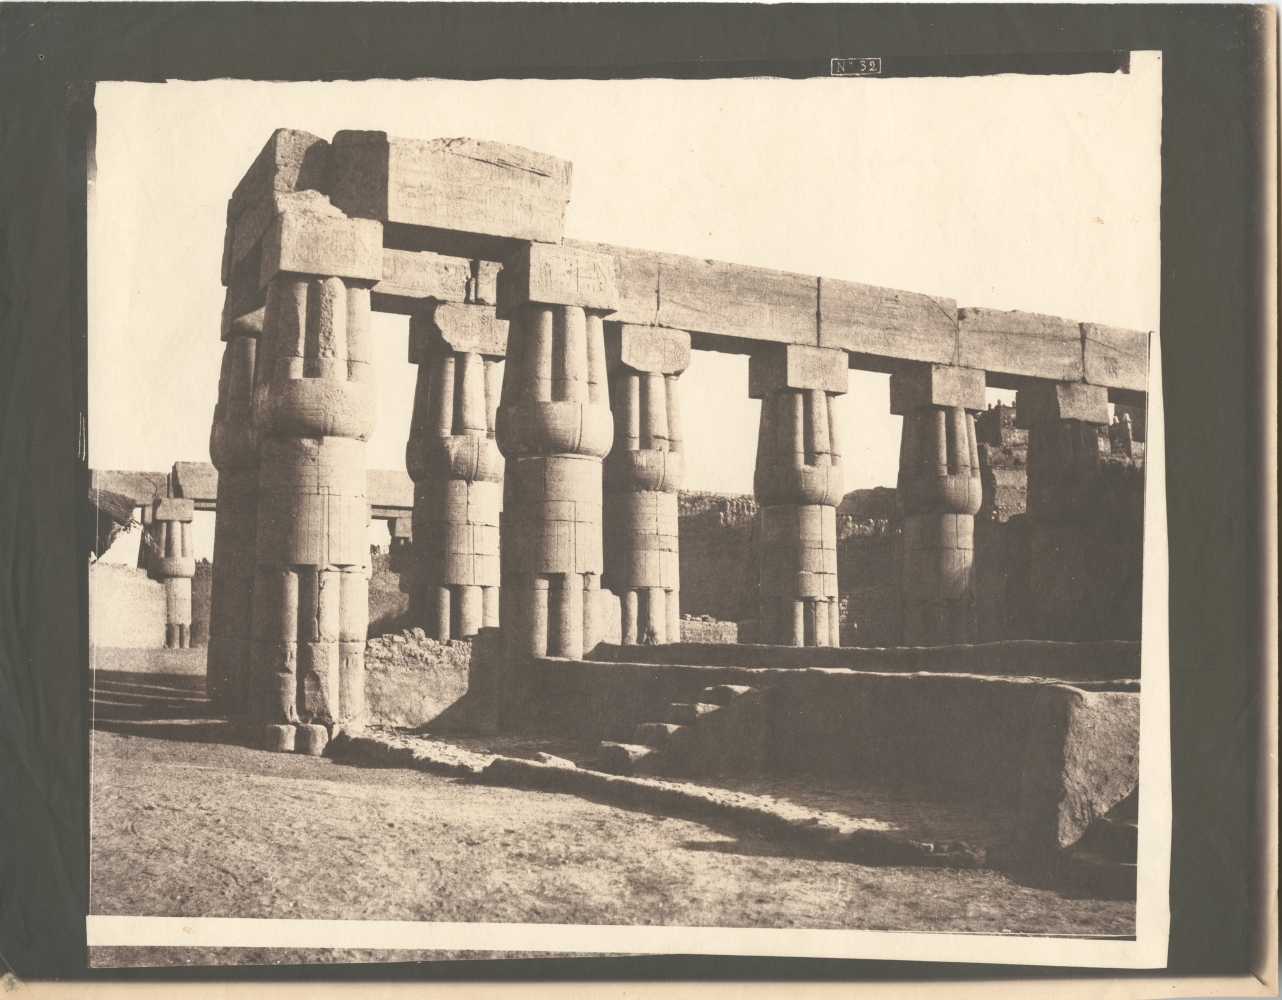 """Félix TEYNARD (French, 1817-1892) Louksor (Thebes). Construction Postérieure - Galeries Parallèles. Pl. 32, 1851-1852 Salt print from a waxed paper negative 26.4 x 31.5 cm on 29.0 x 37.0 cm paper Numbered """"No 32"""" with trim lines in the negative"""